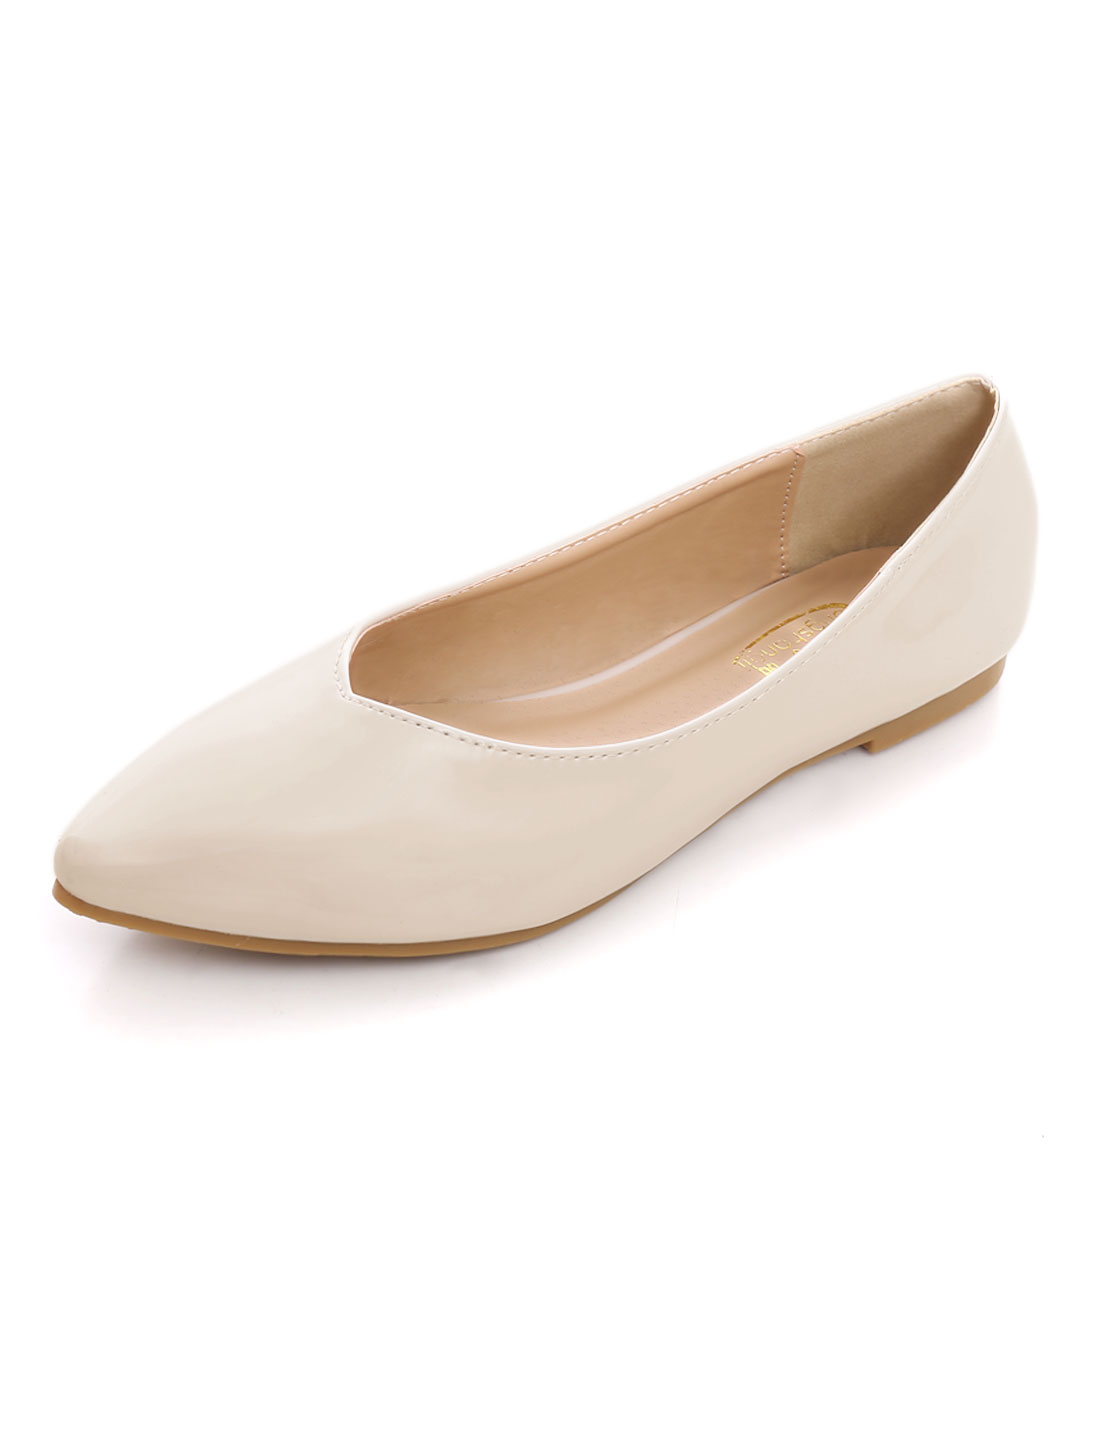 Lady PU Leather V-Cut Vamp Pointed Comfort Shoes Ballet Flats Apricot US 9